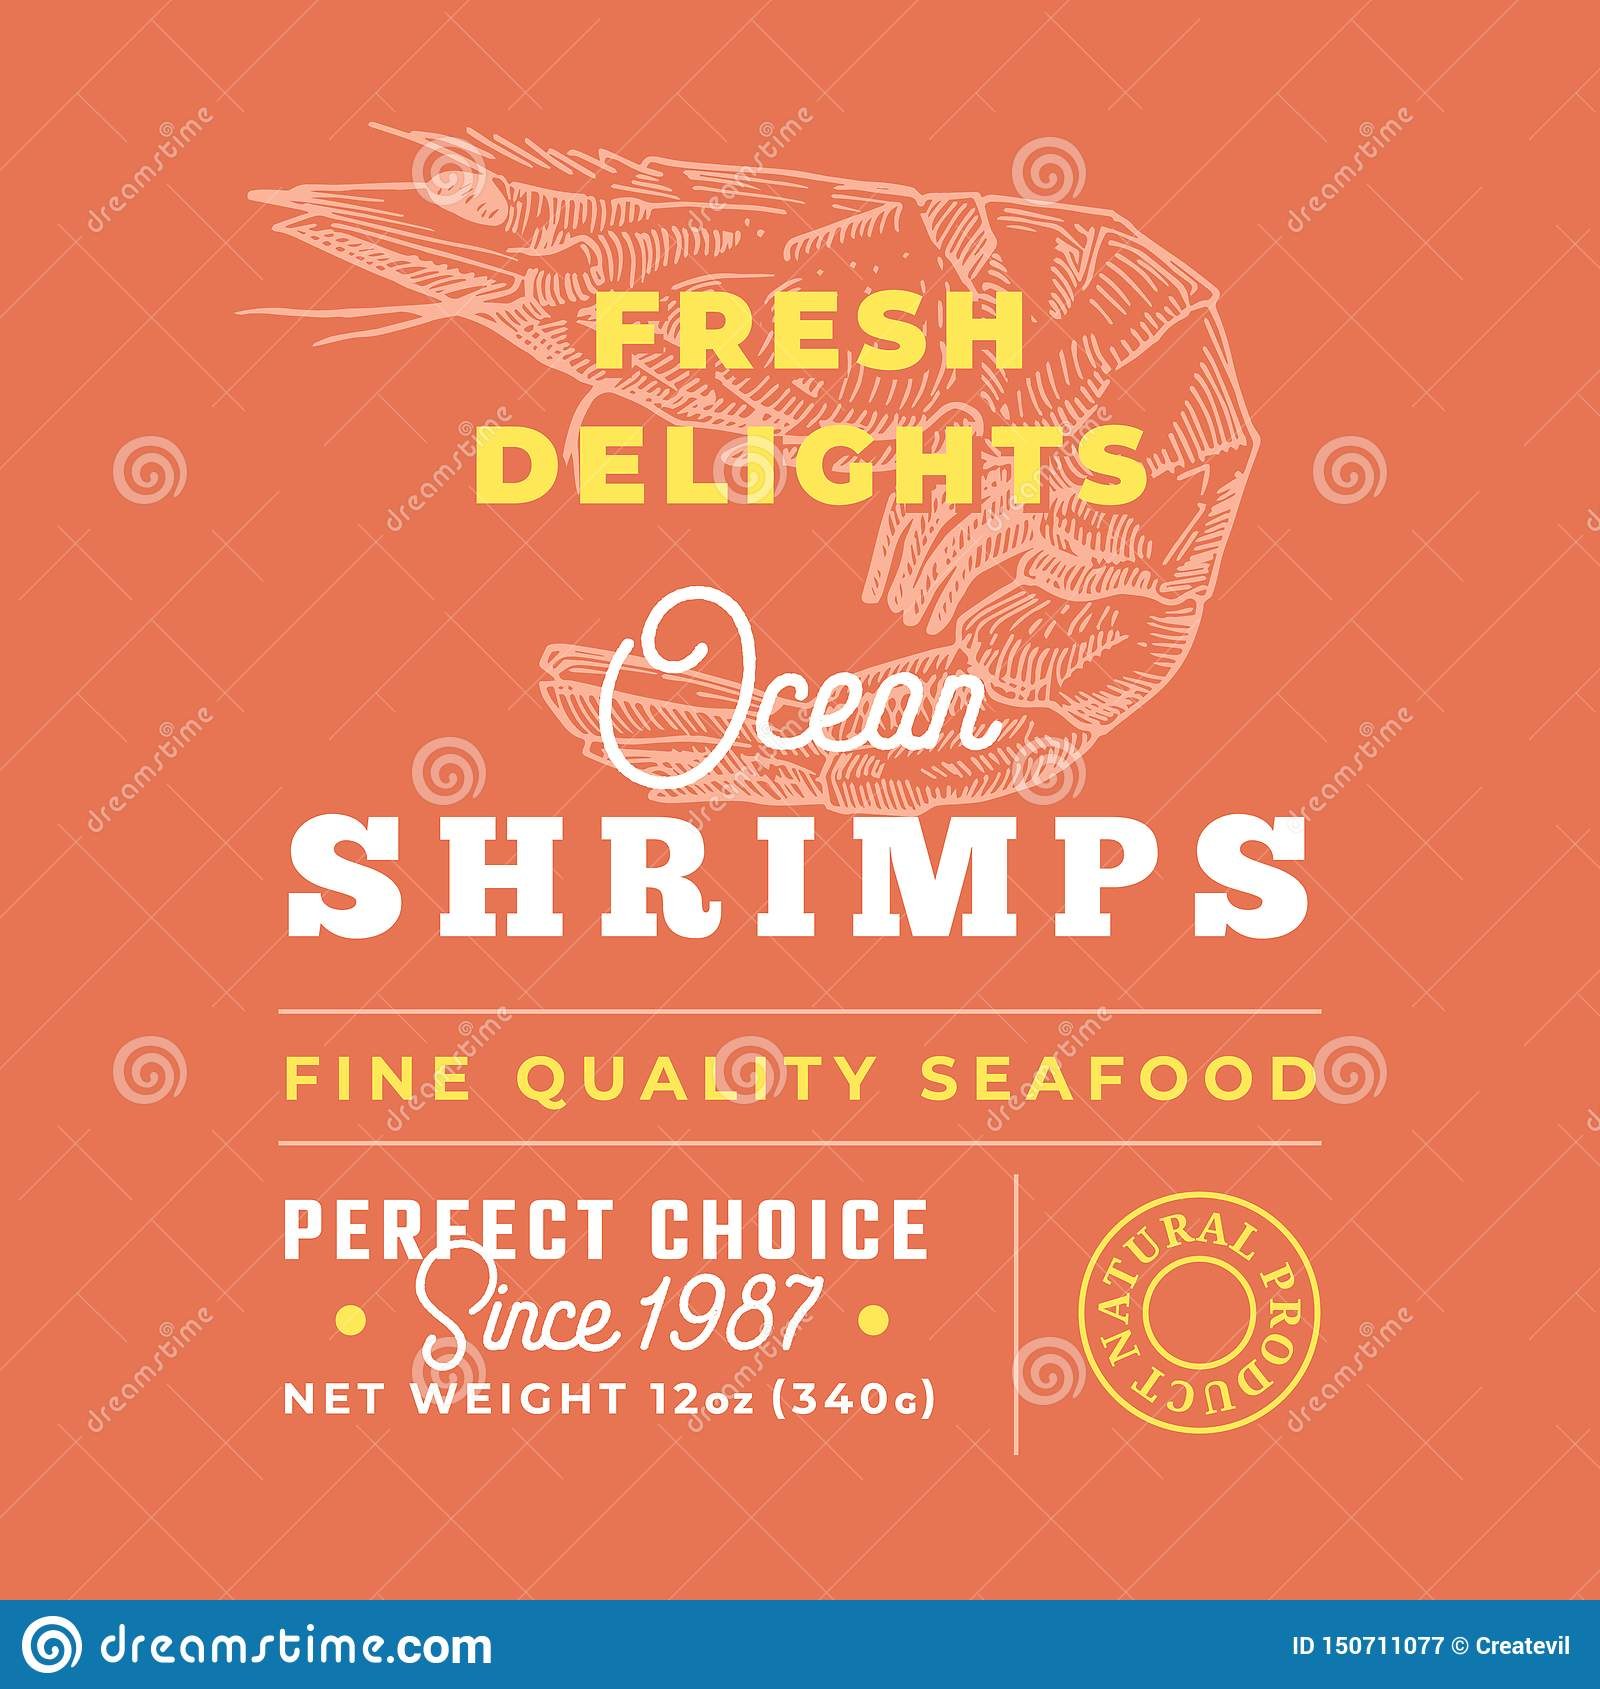 Fresh Seafood Delights Premium Quality Label. Abstract Vector Packaging Design Layout. Retro Typography with Borders and